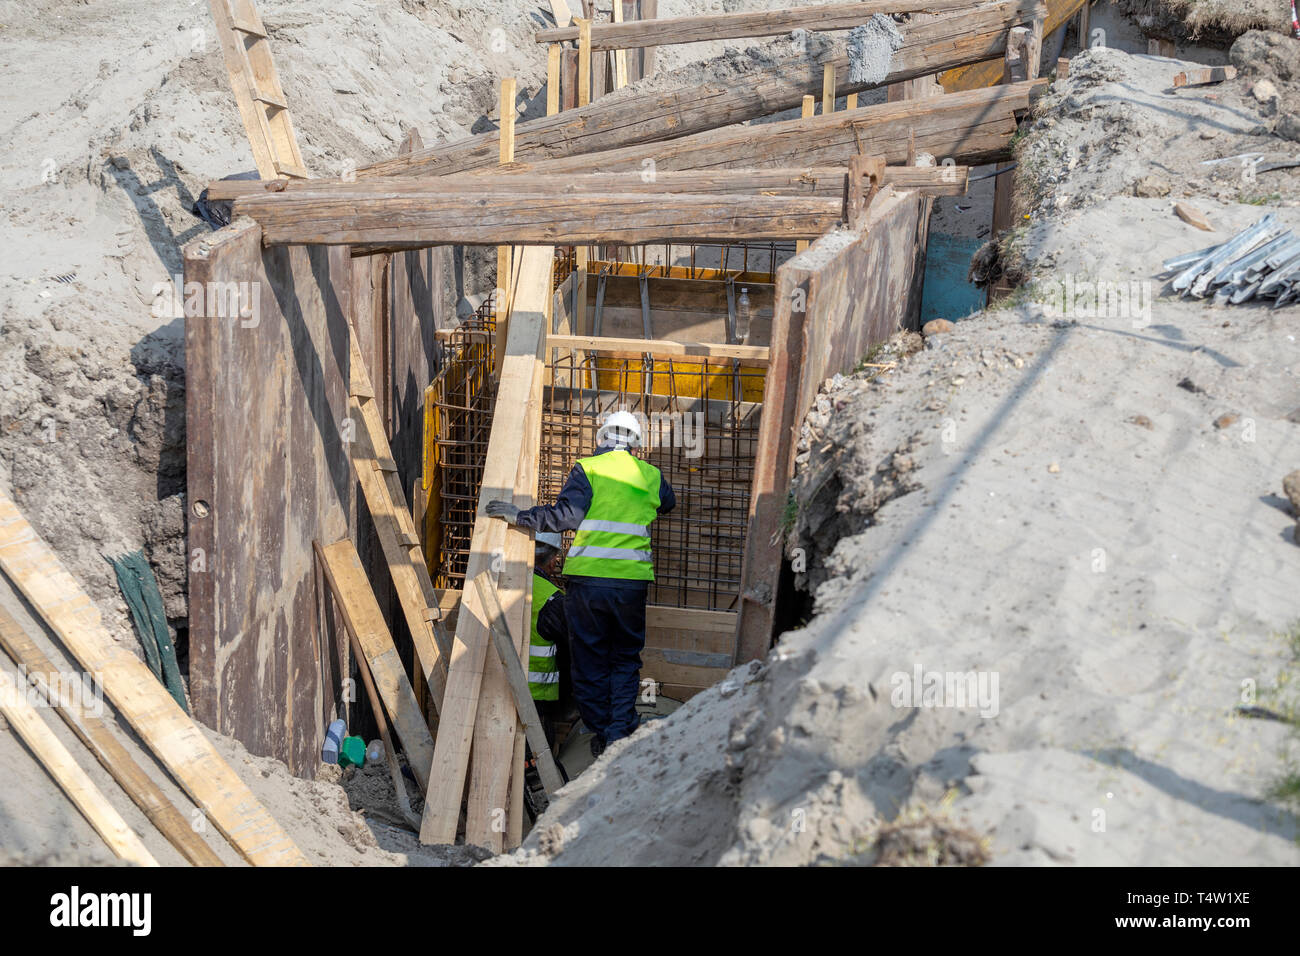 Deep trench shoring to avoid risks of landslide. Walls with supports to prevent sloughing of the soil. Trenching and excavation safety. - Stock Image